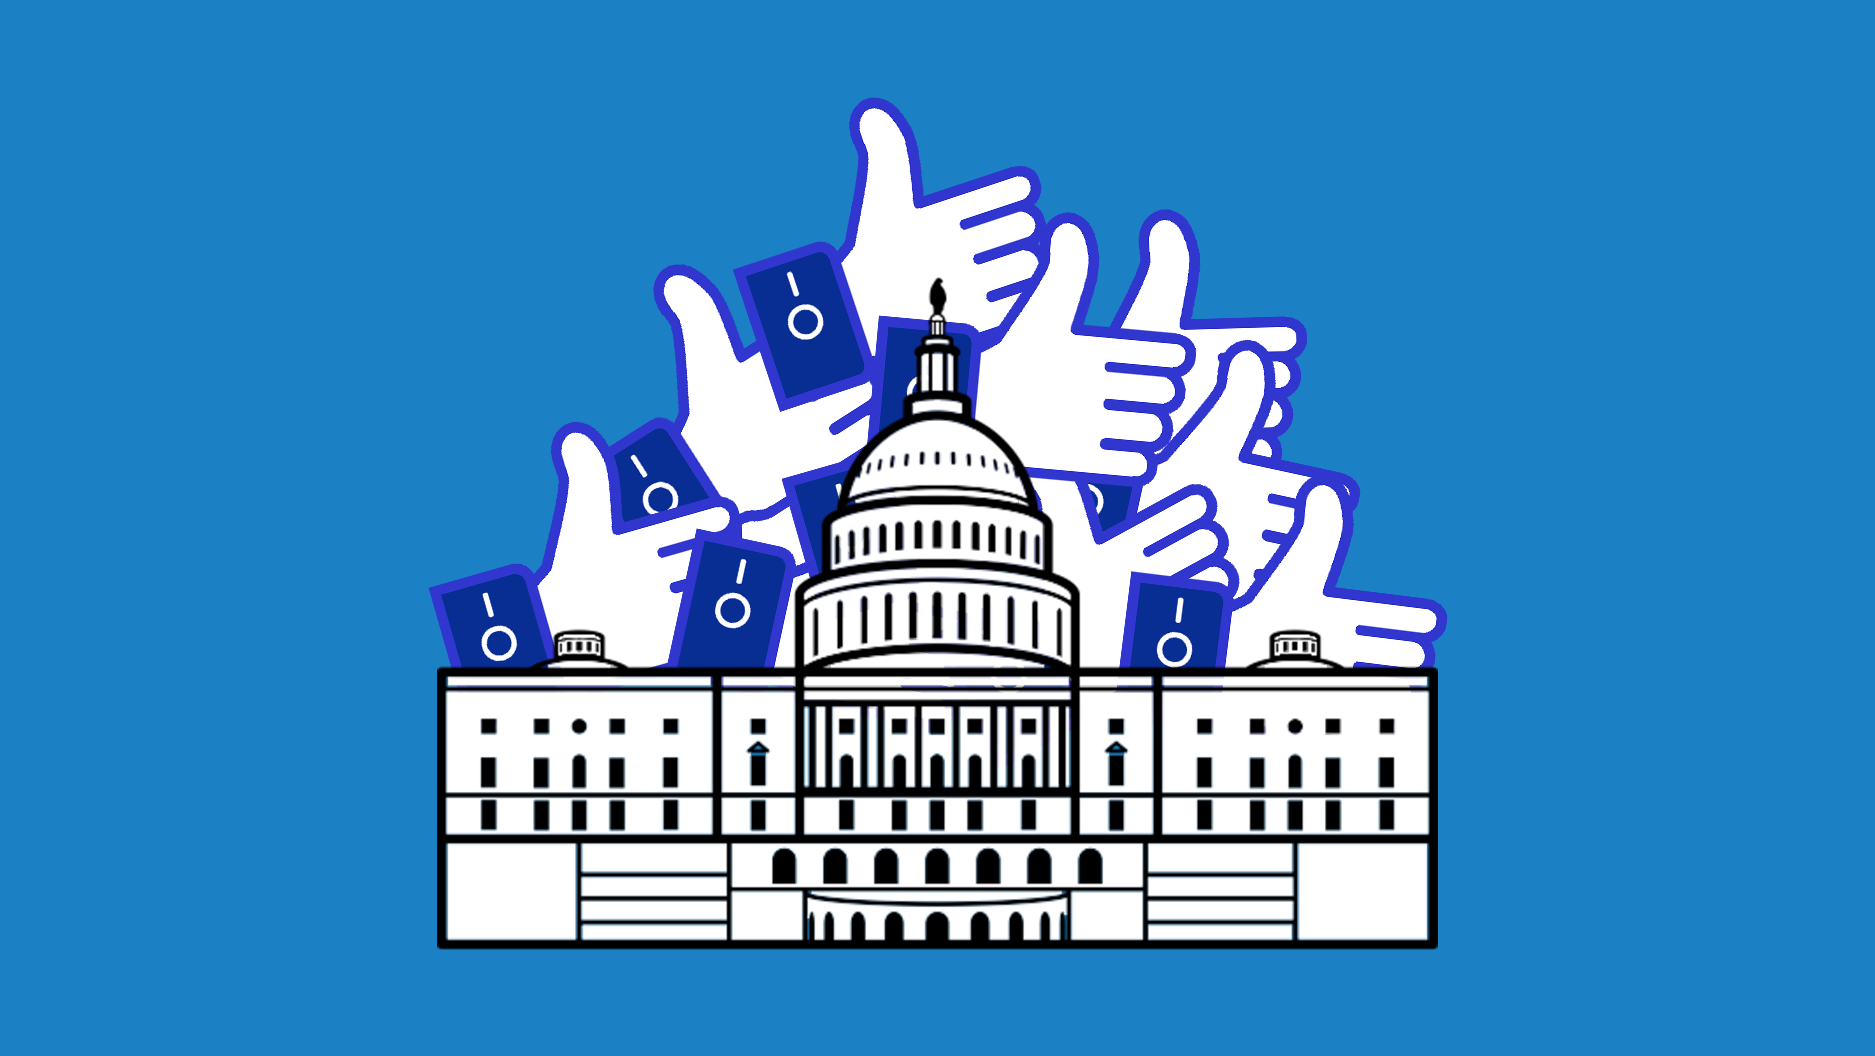 Facebook has uncovered a coordinated effort to influence politics ...